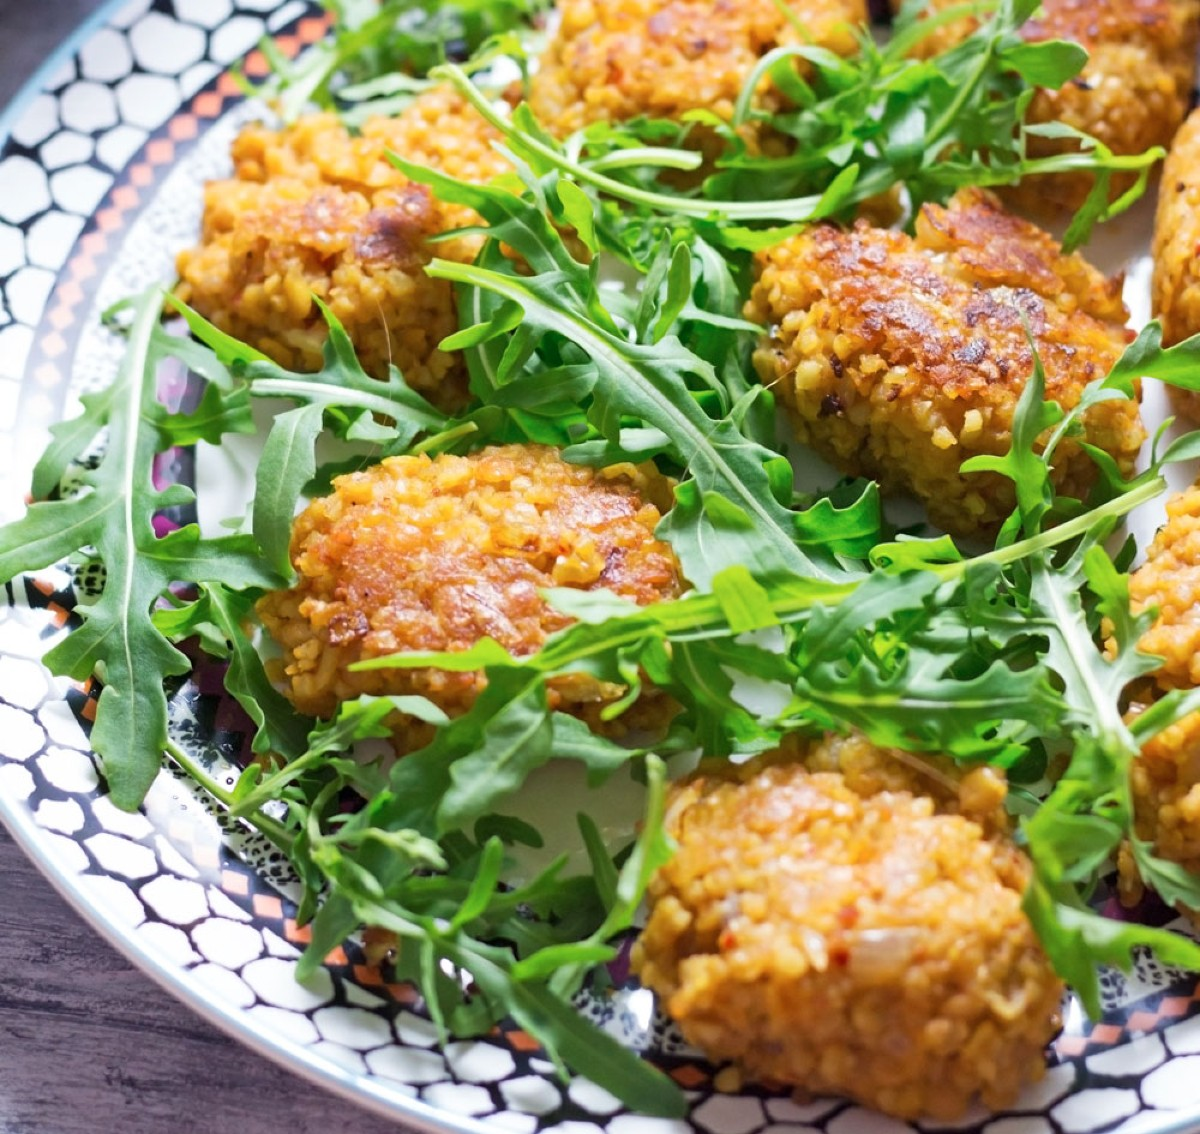 Lentil and bulgur wheat cakes served on a plate with arugula